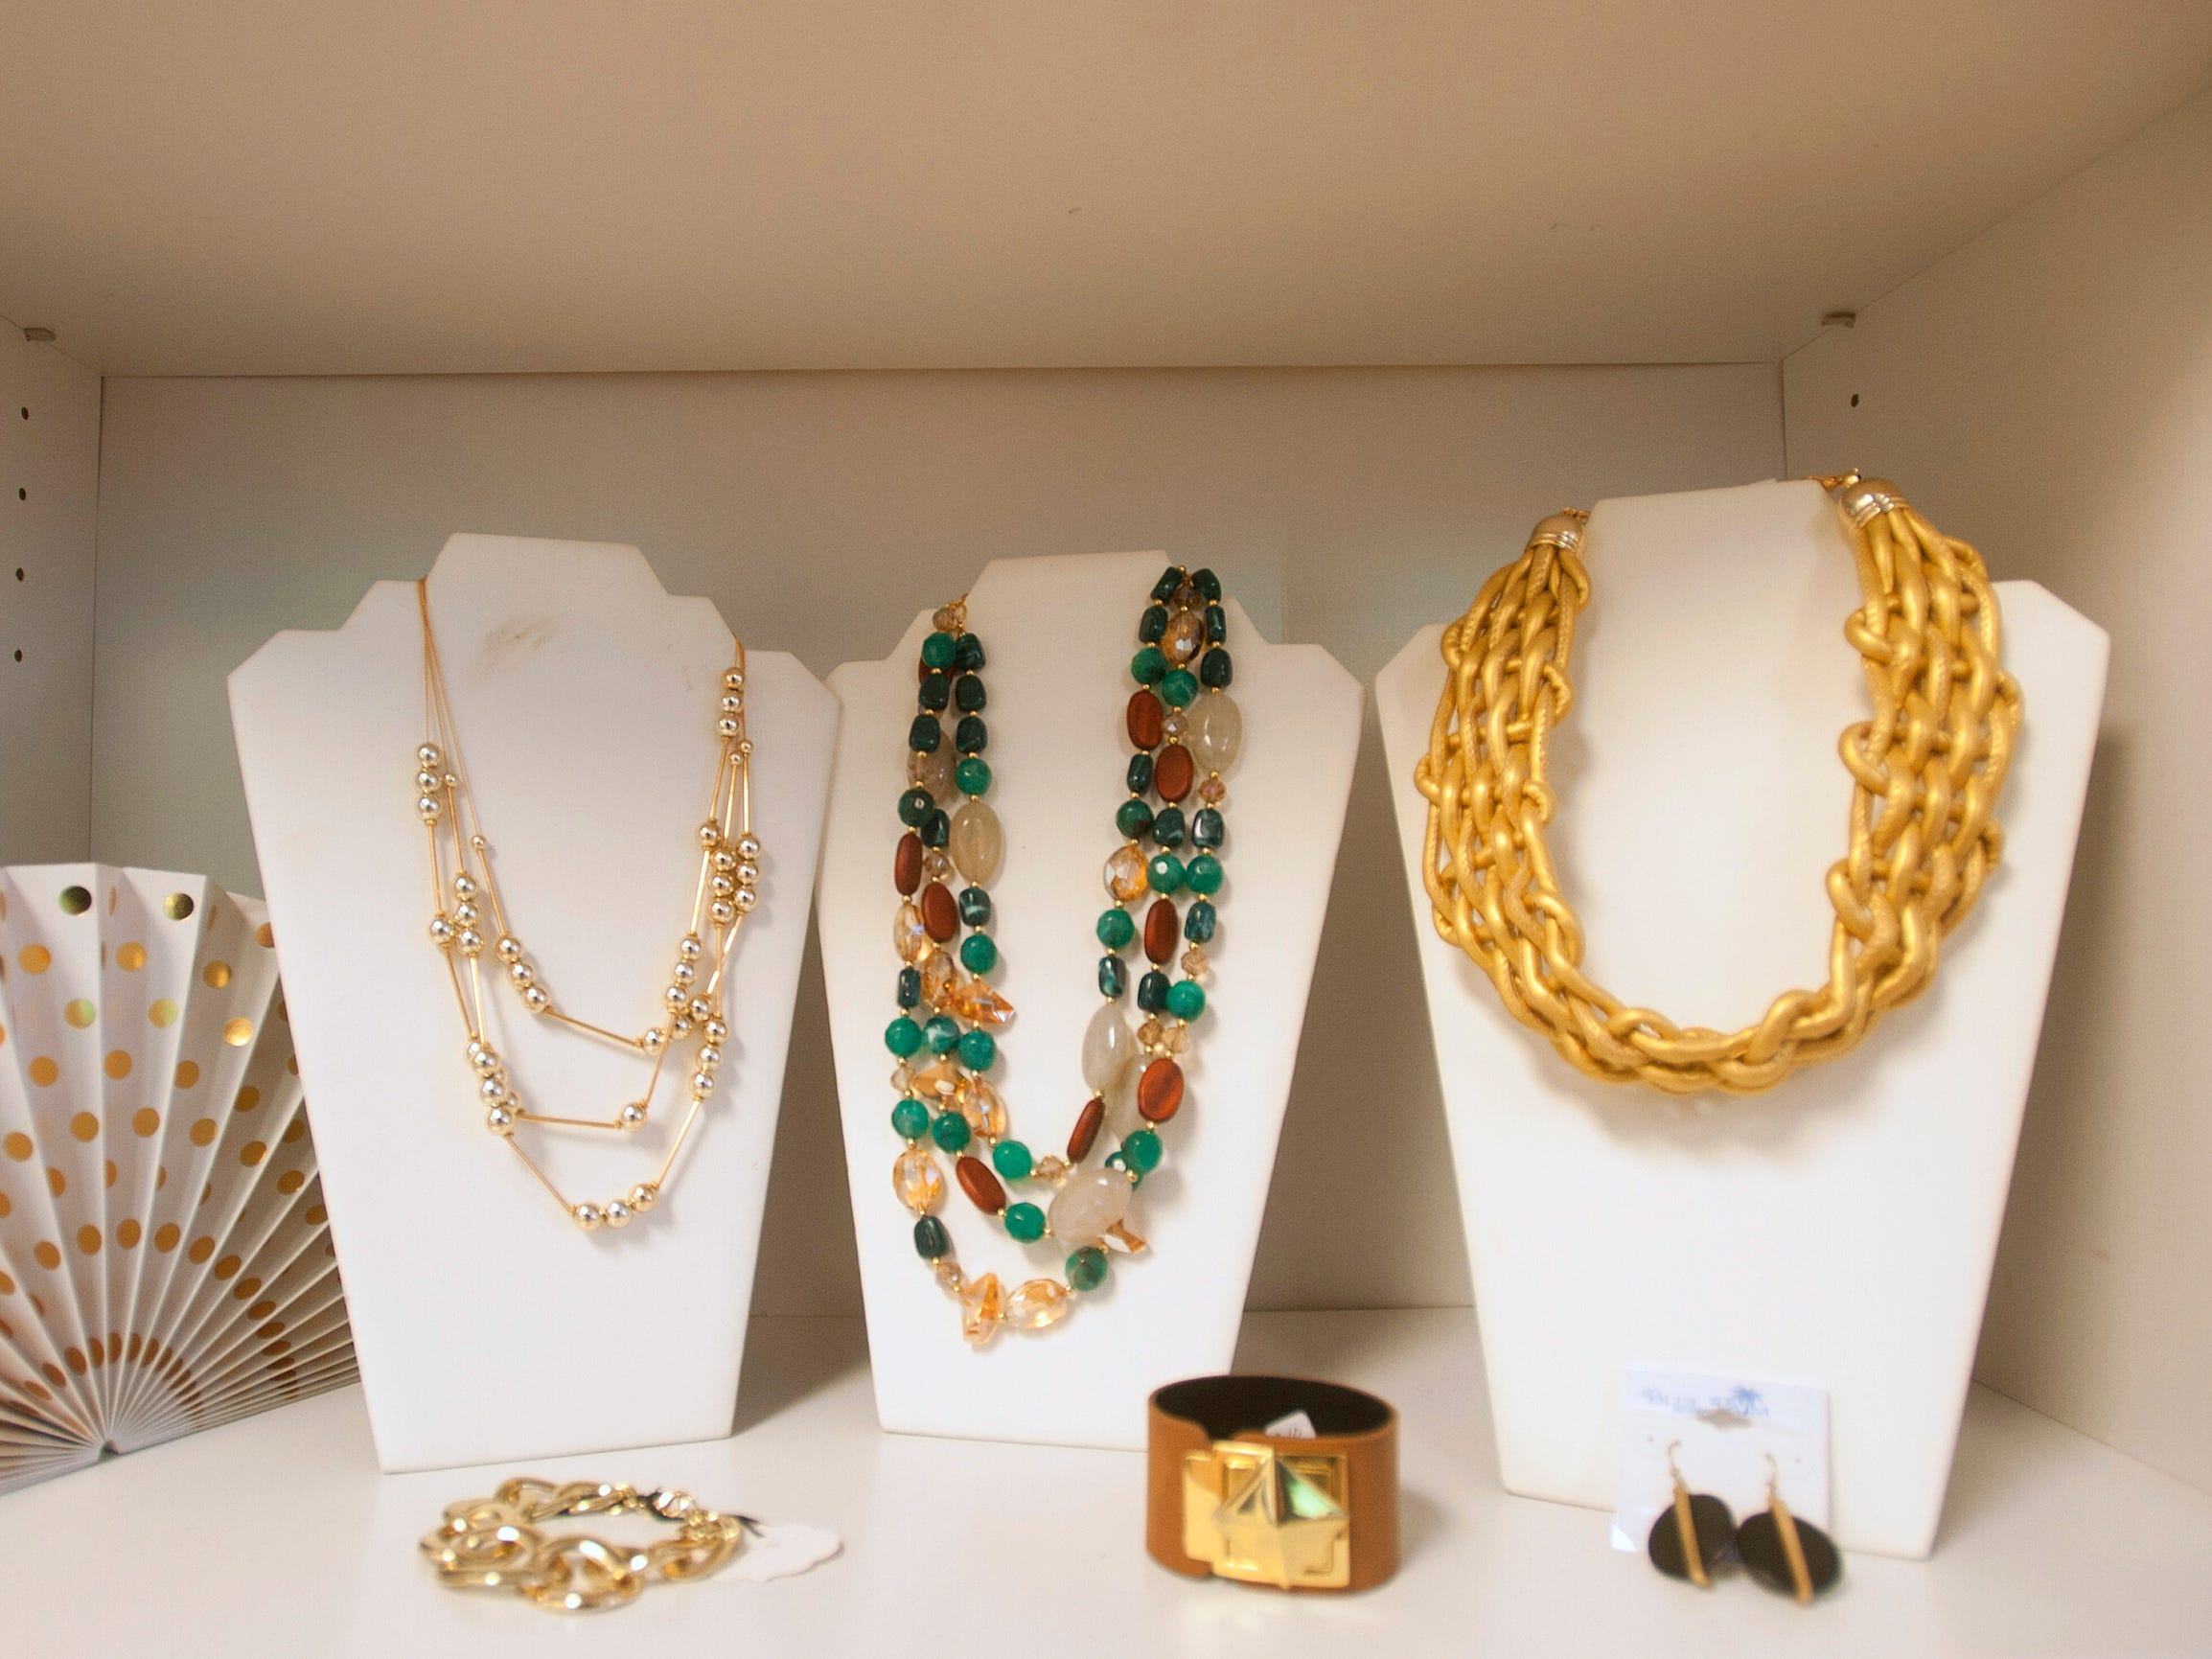 Some of the necklaces, bracelets and earrings at Blue Palm Access, a women's boutique at 2001 W. Broadway, as part of Louisville's Small Business Saturday. 24 November 2018